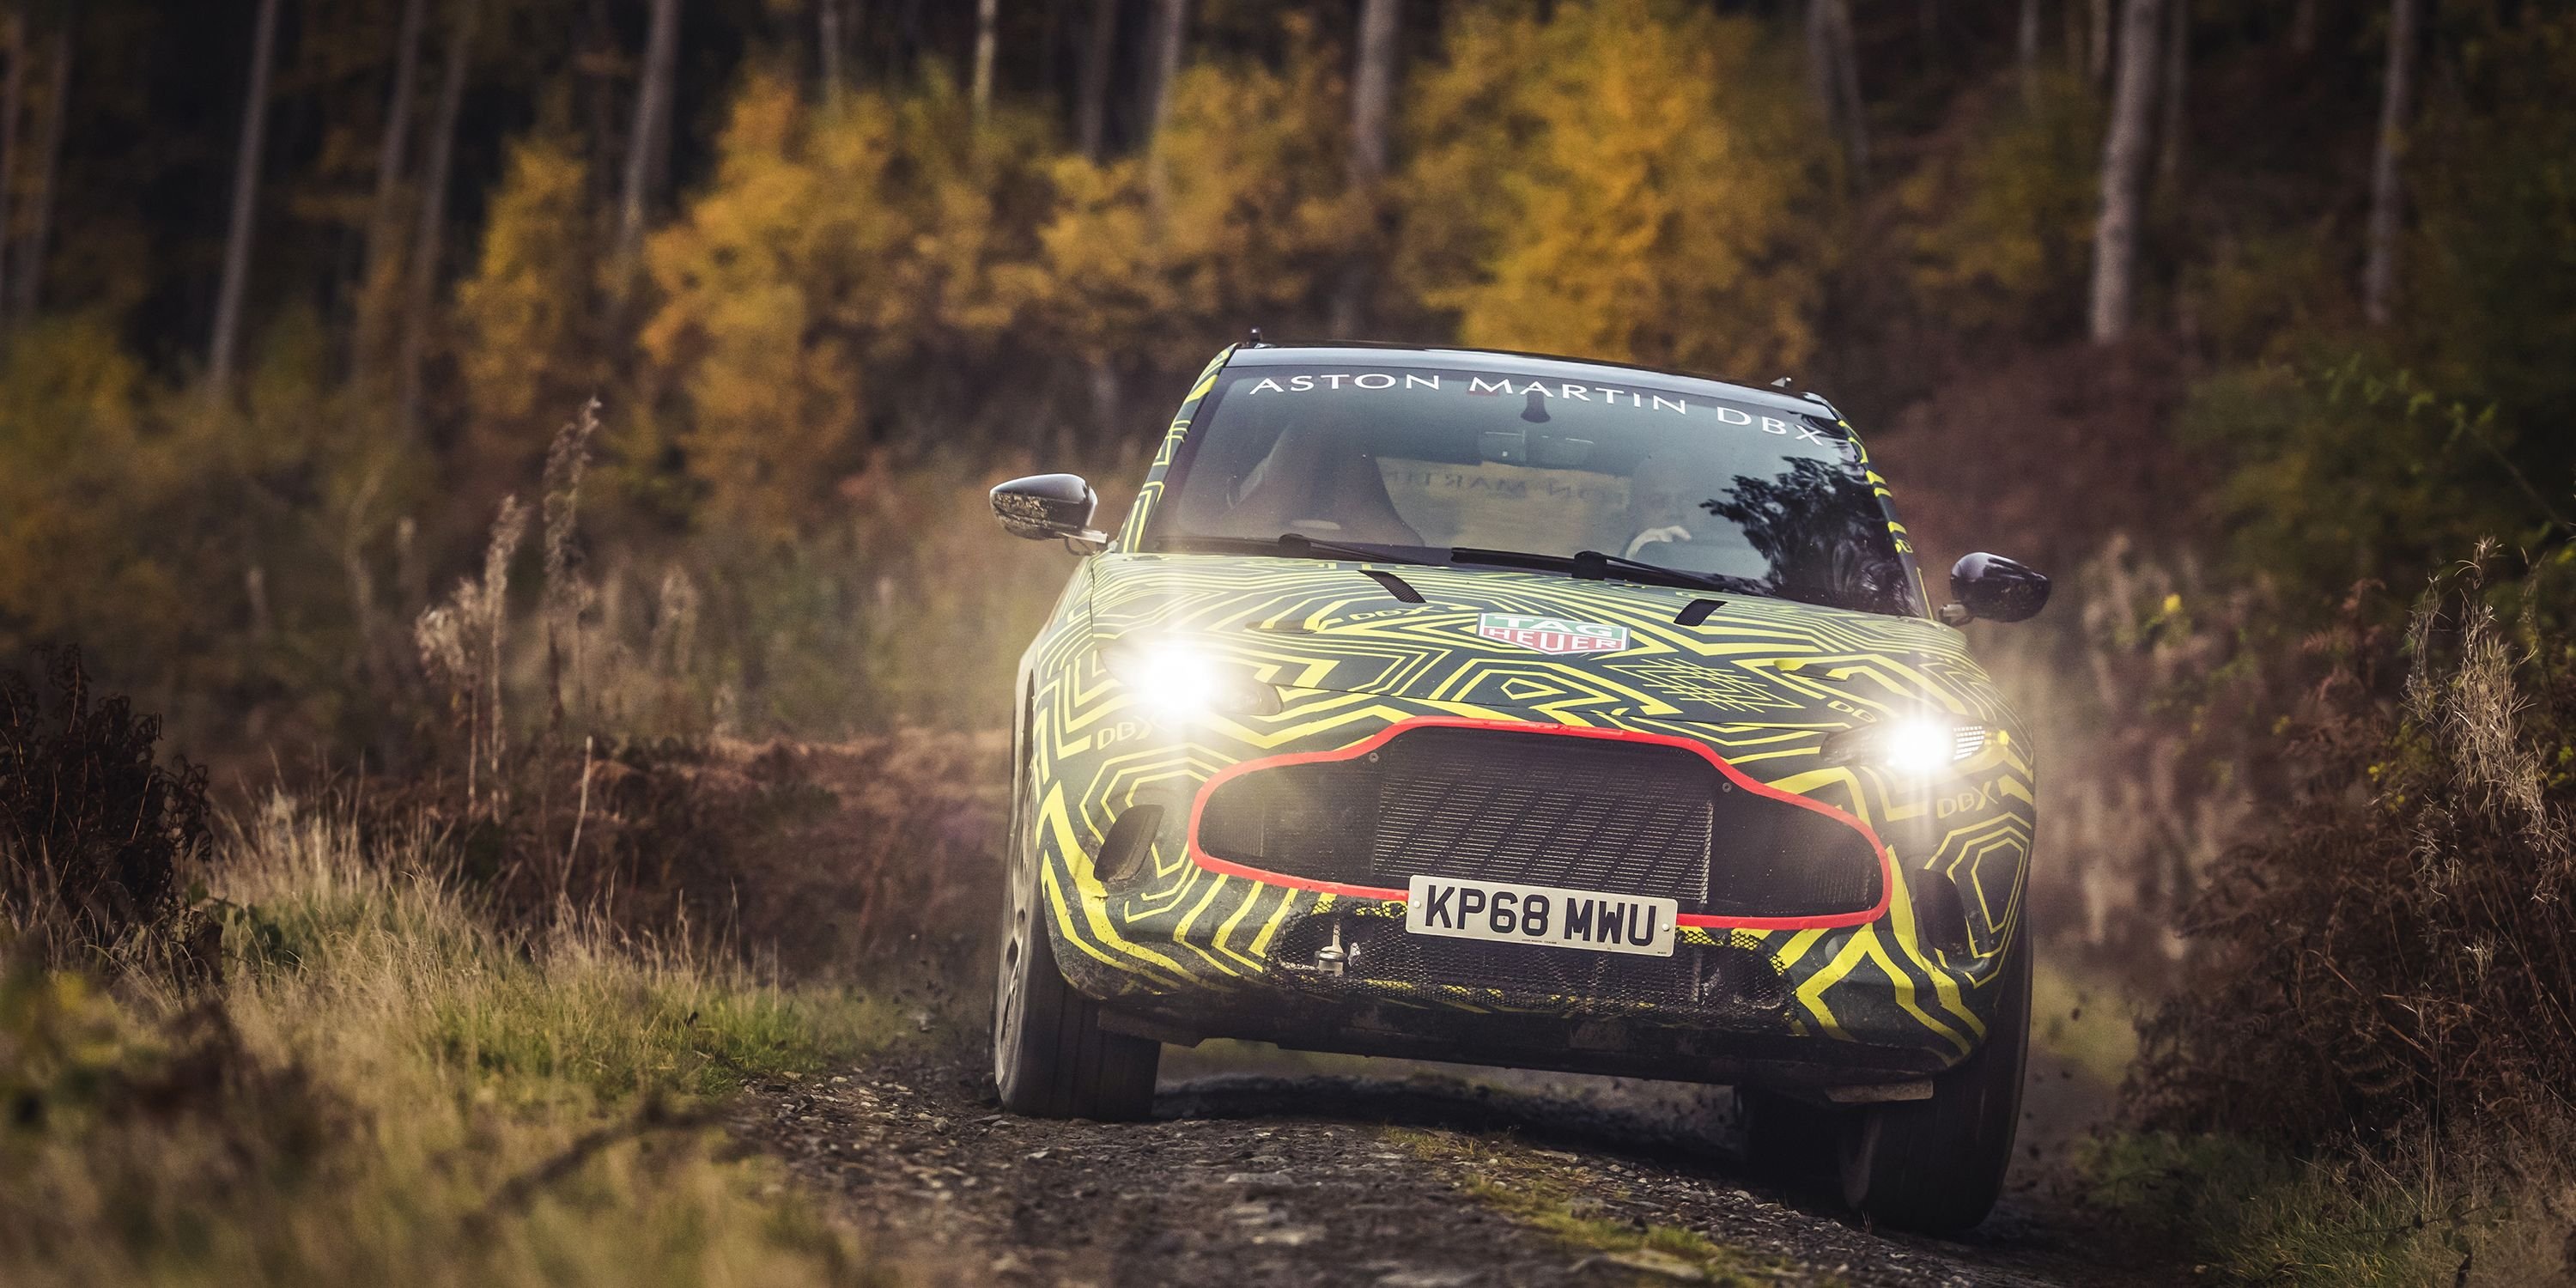 2020 Aston Martin Dbx Spy Photos First Look At New Aston Suv